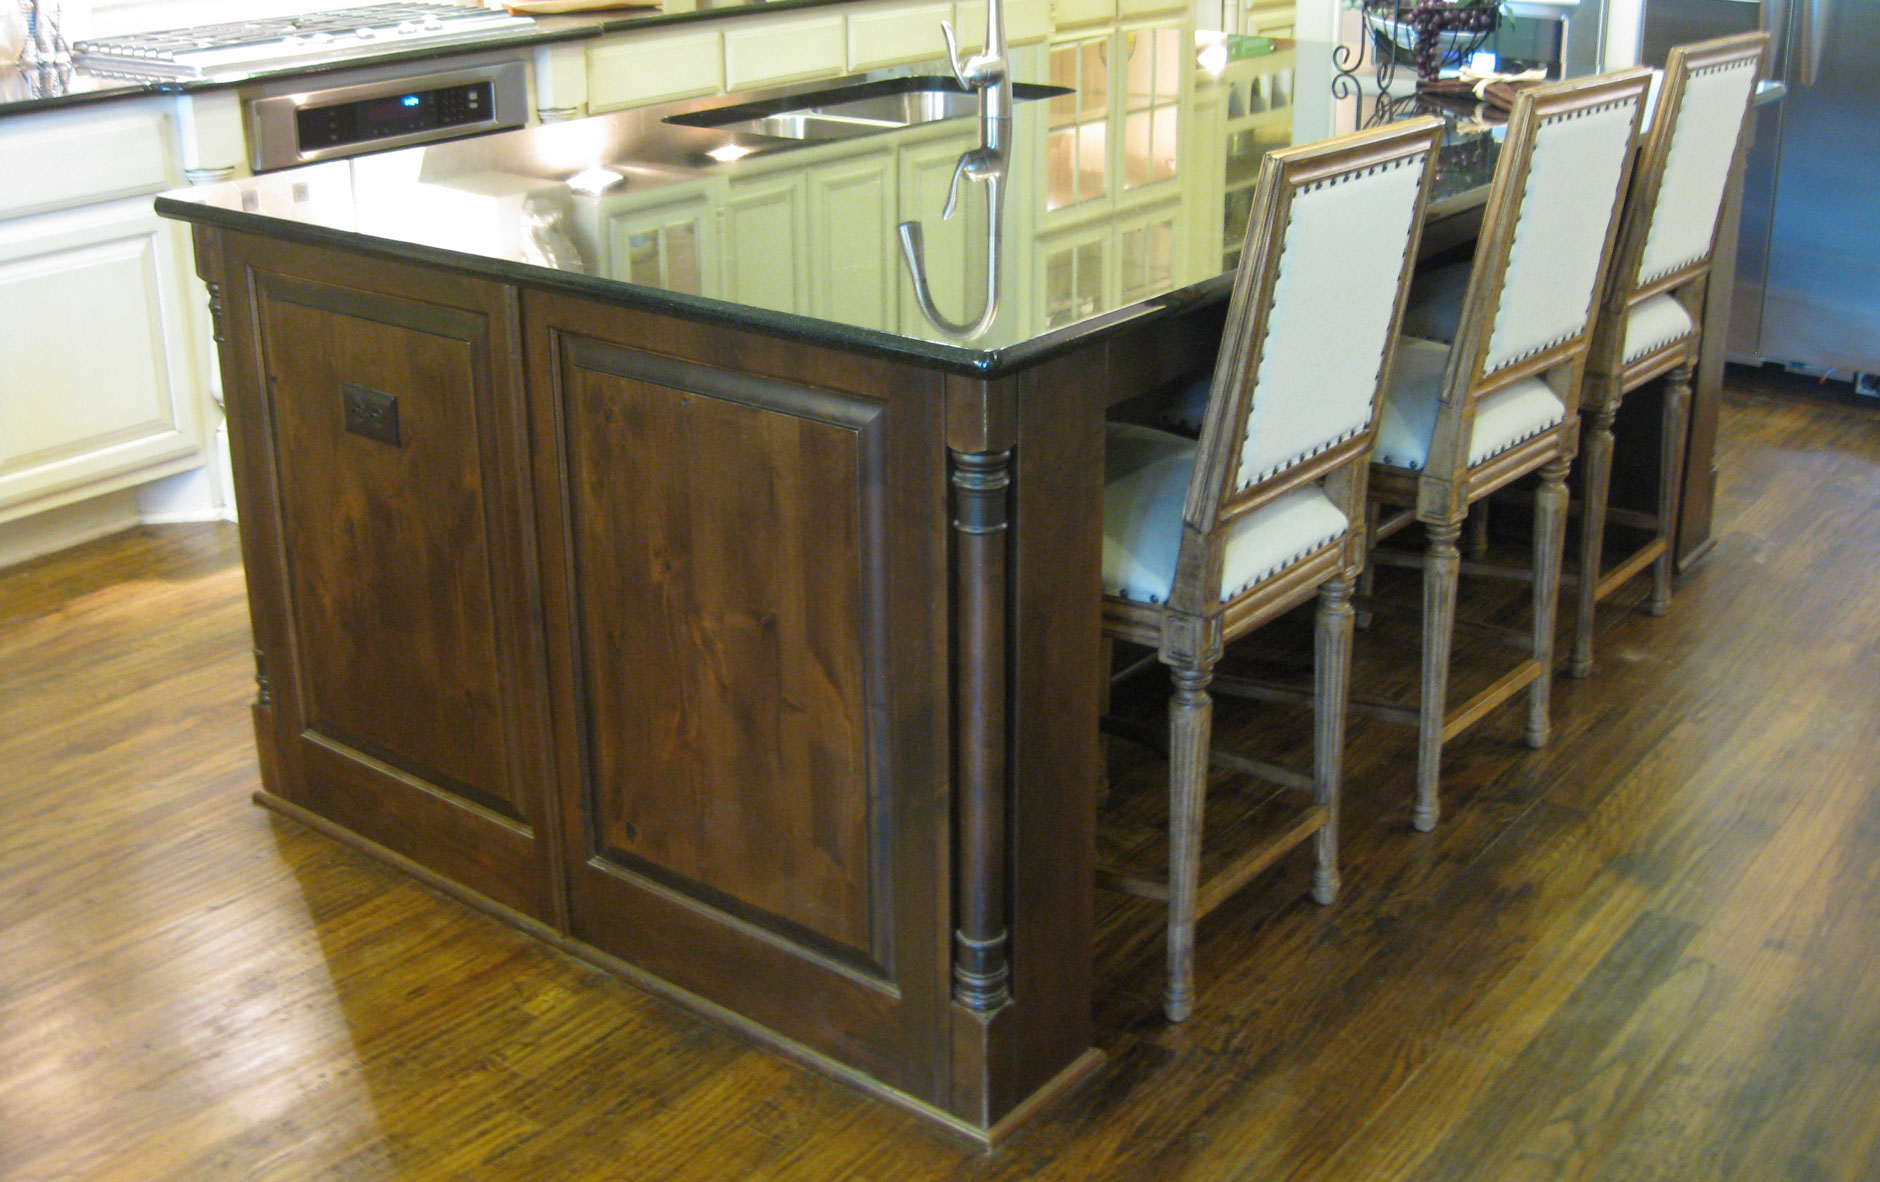 Kitchen Island Burrows Cabinets Central Texas Builder